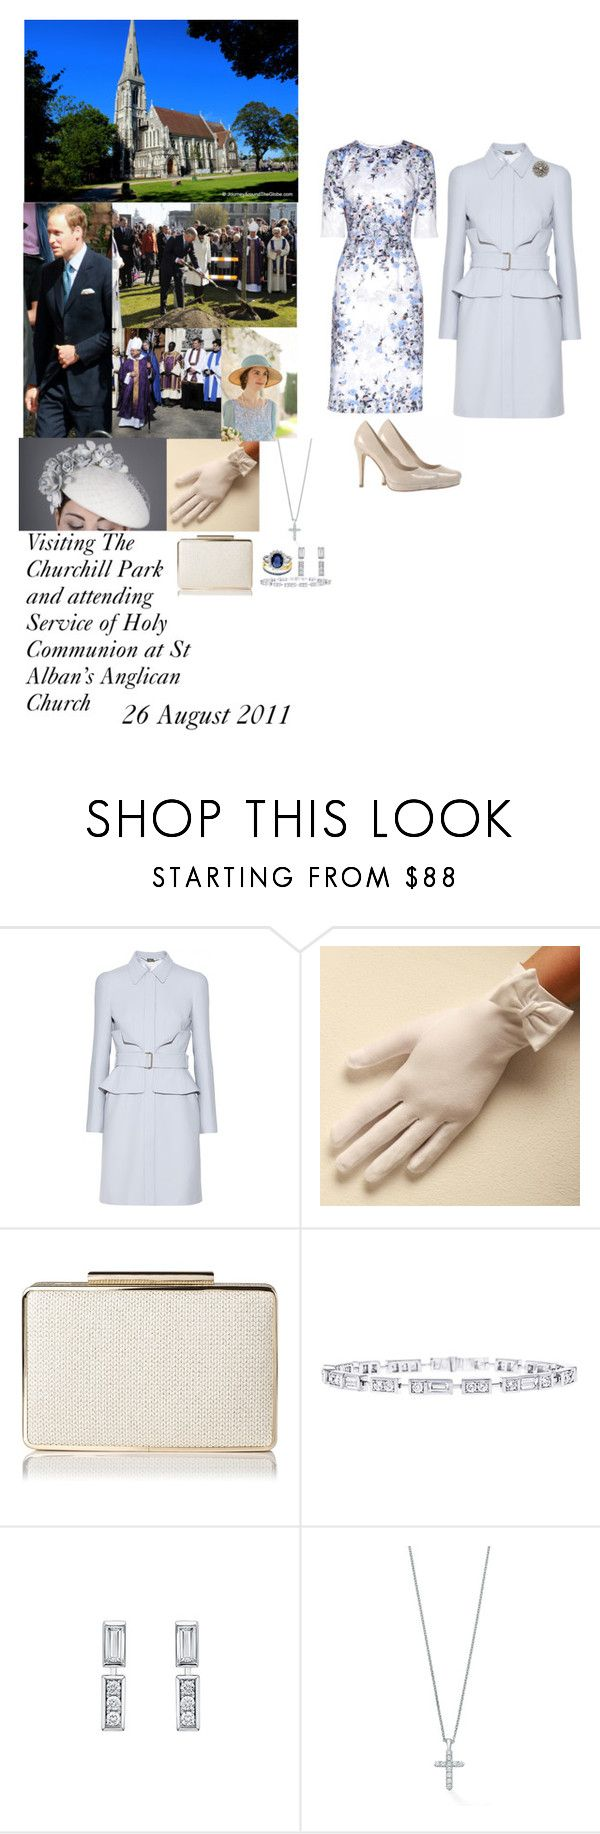 """""""Visiting the Churchill Park and Attending Service of Holy Communion St Alban's Anglican Church"""" by madeleine-duchessofcam ❤ liked on Polyvore featuring Alexander McQueen, L.K.Bennett, Russell & Bromley, Harry Winston and Erdem"""